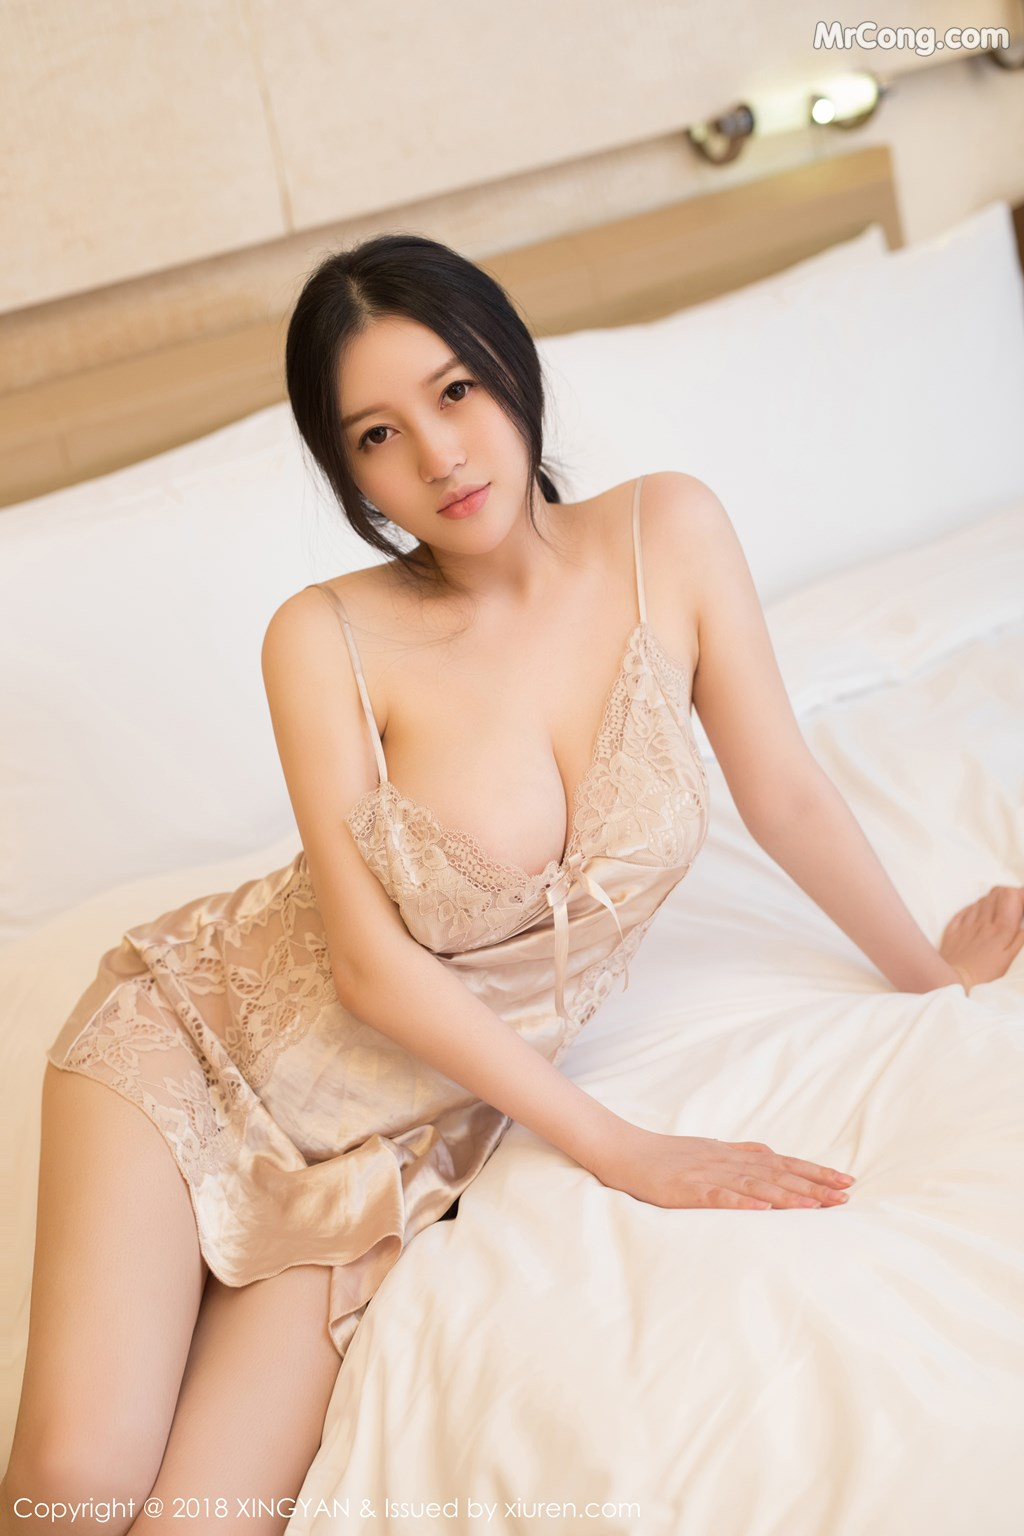 anh-sexy-9